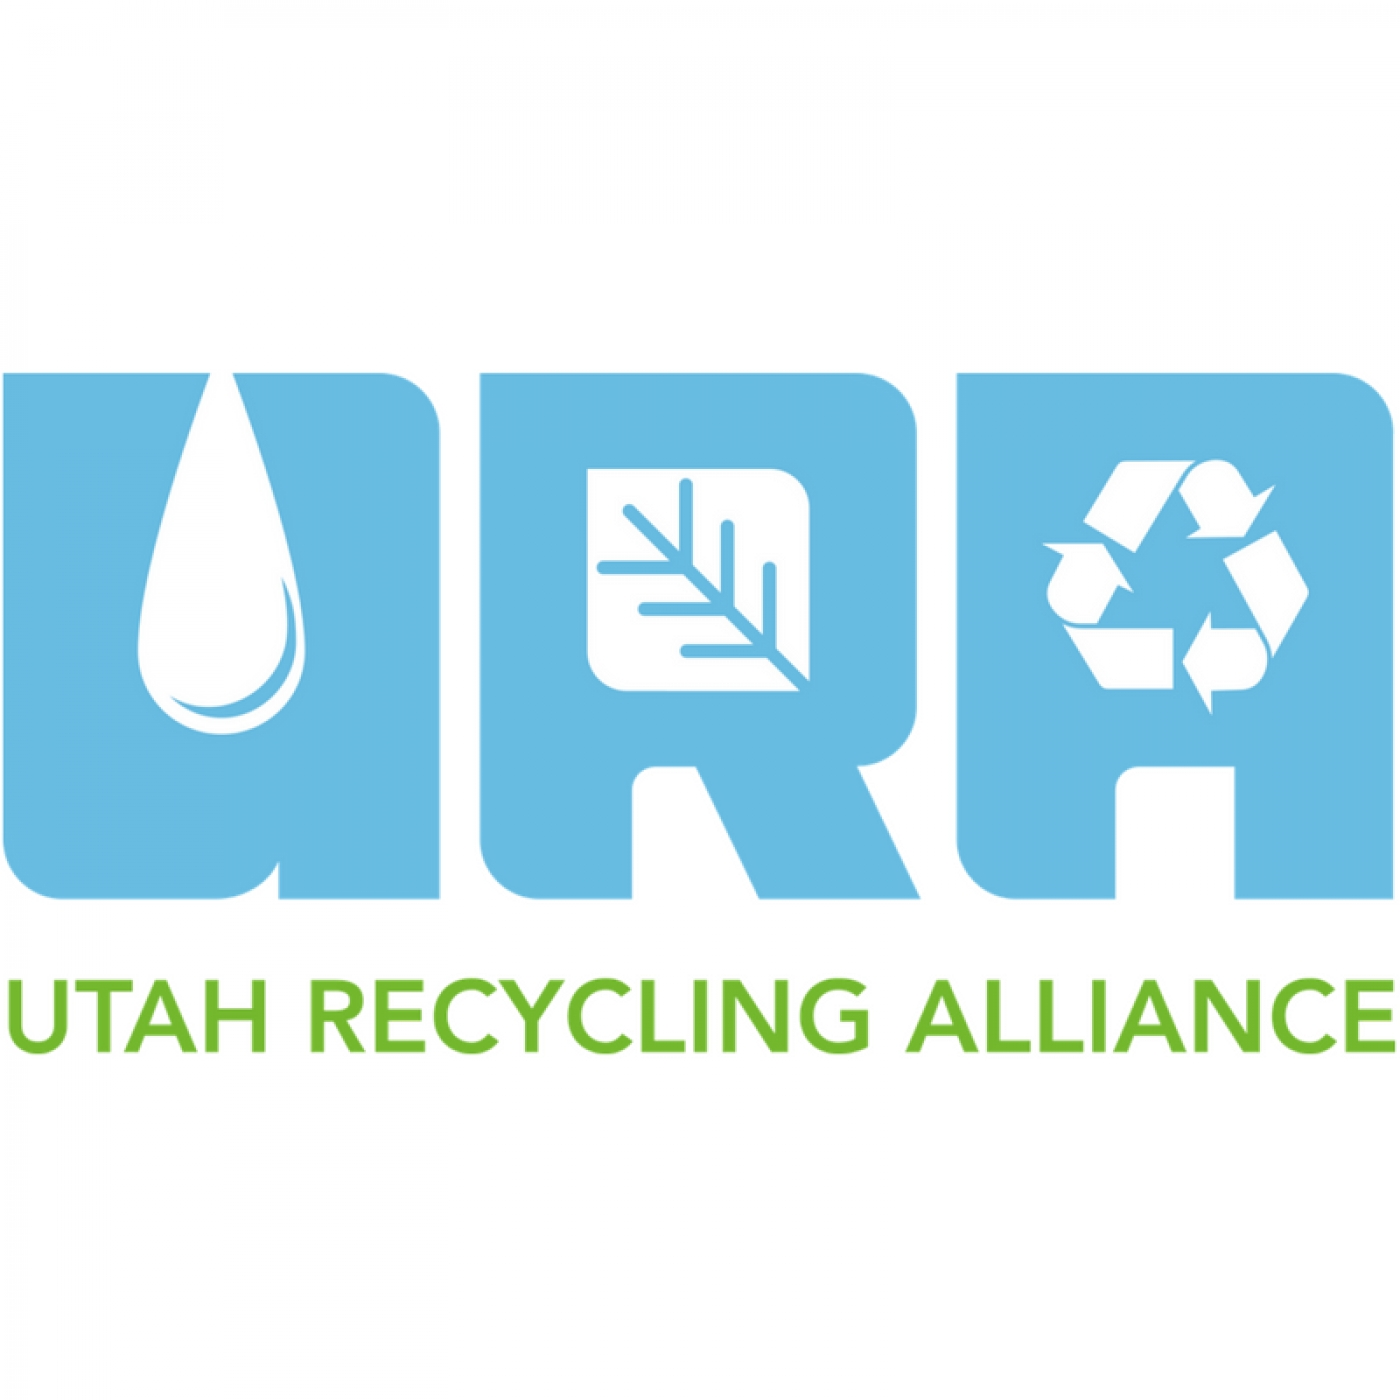 Collection of Hard to Recycle Materials - Jan 11